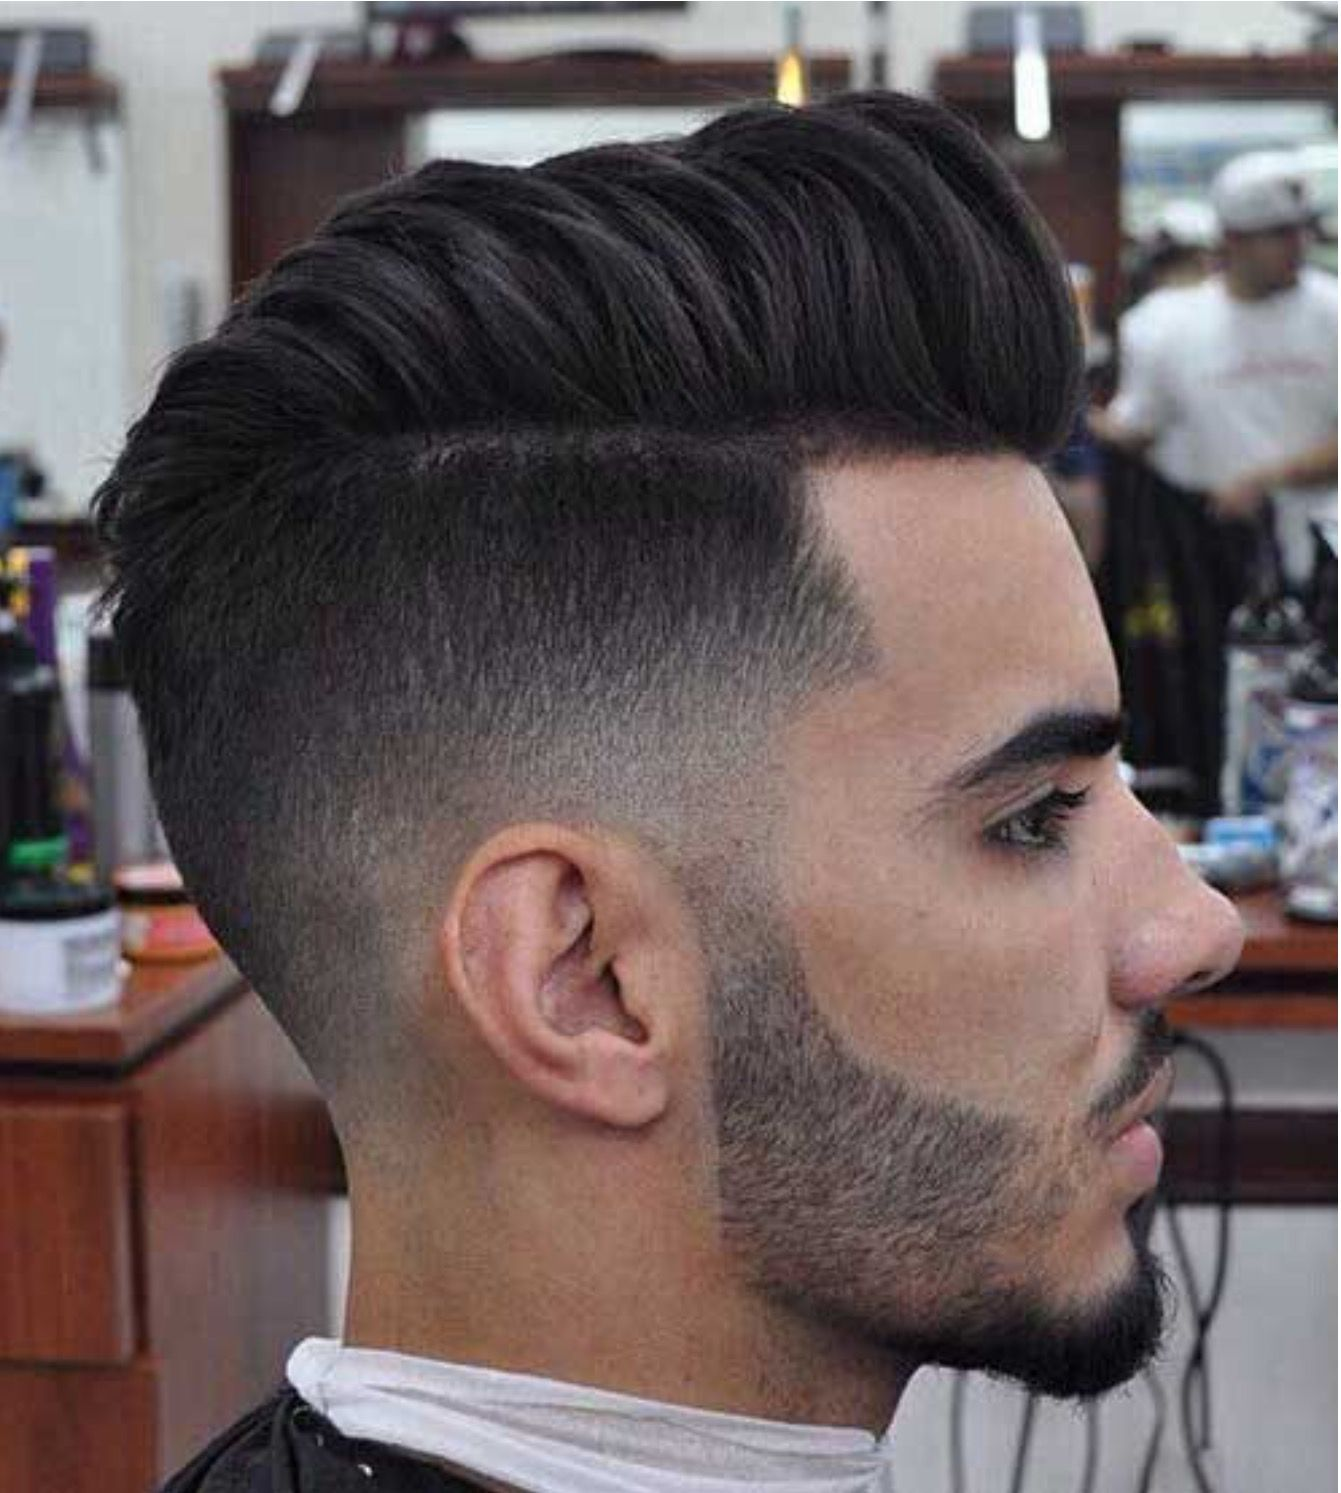 Top 100 Awesome Mens Haircuts 2018 Created By The Worlds Best Barbers Check Out Our Gallery For 1000s More Mens Hairstyles Hair Men Hairstyle Barb Barberia